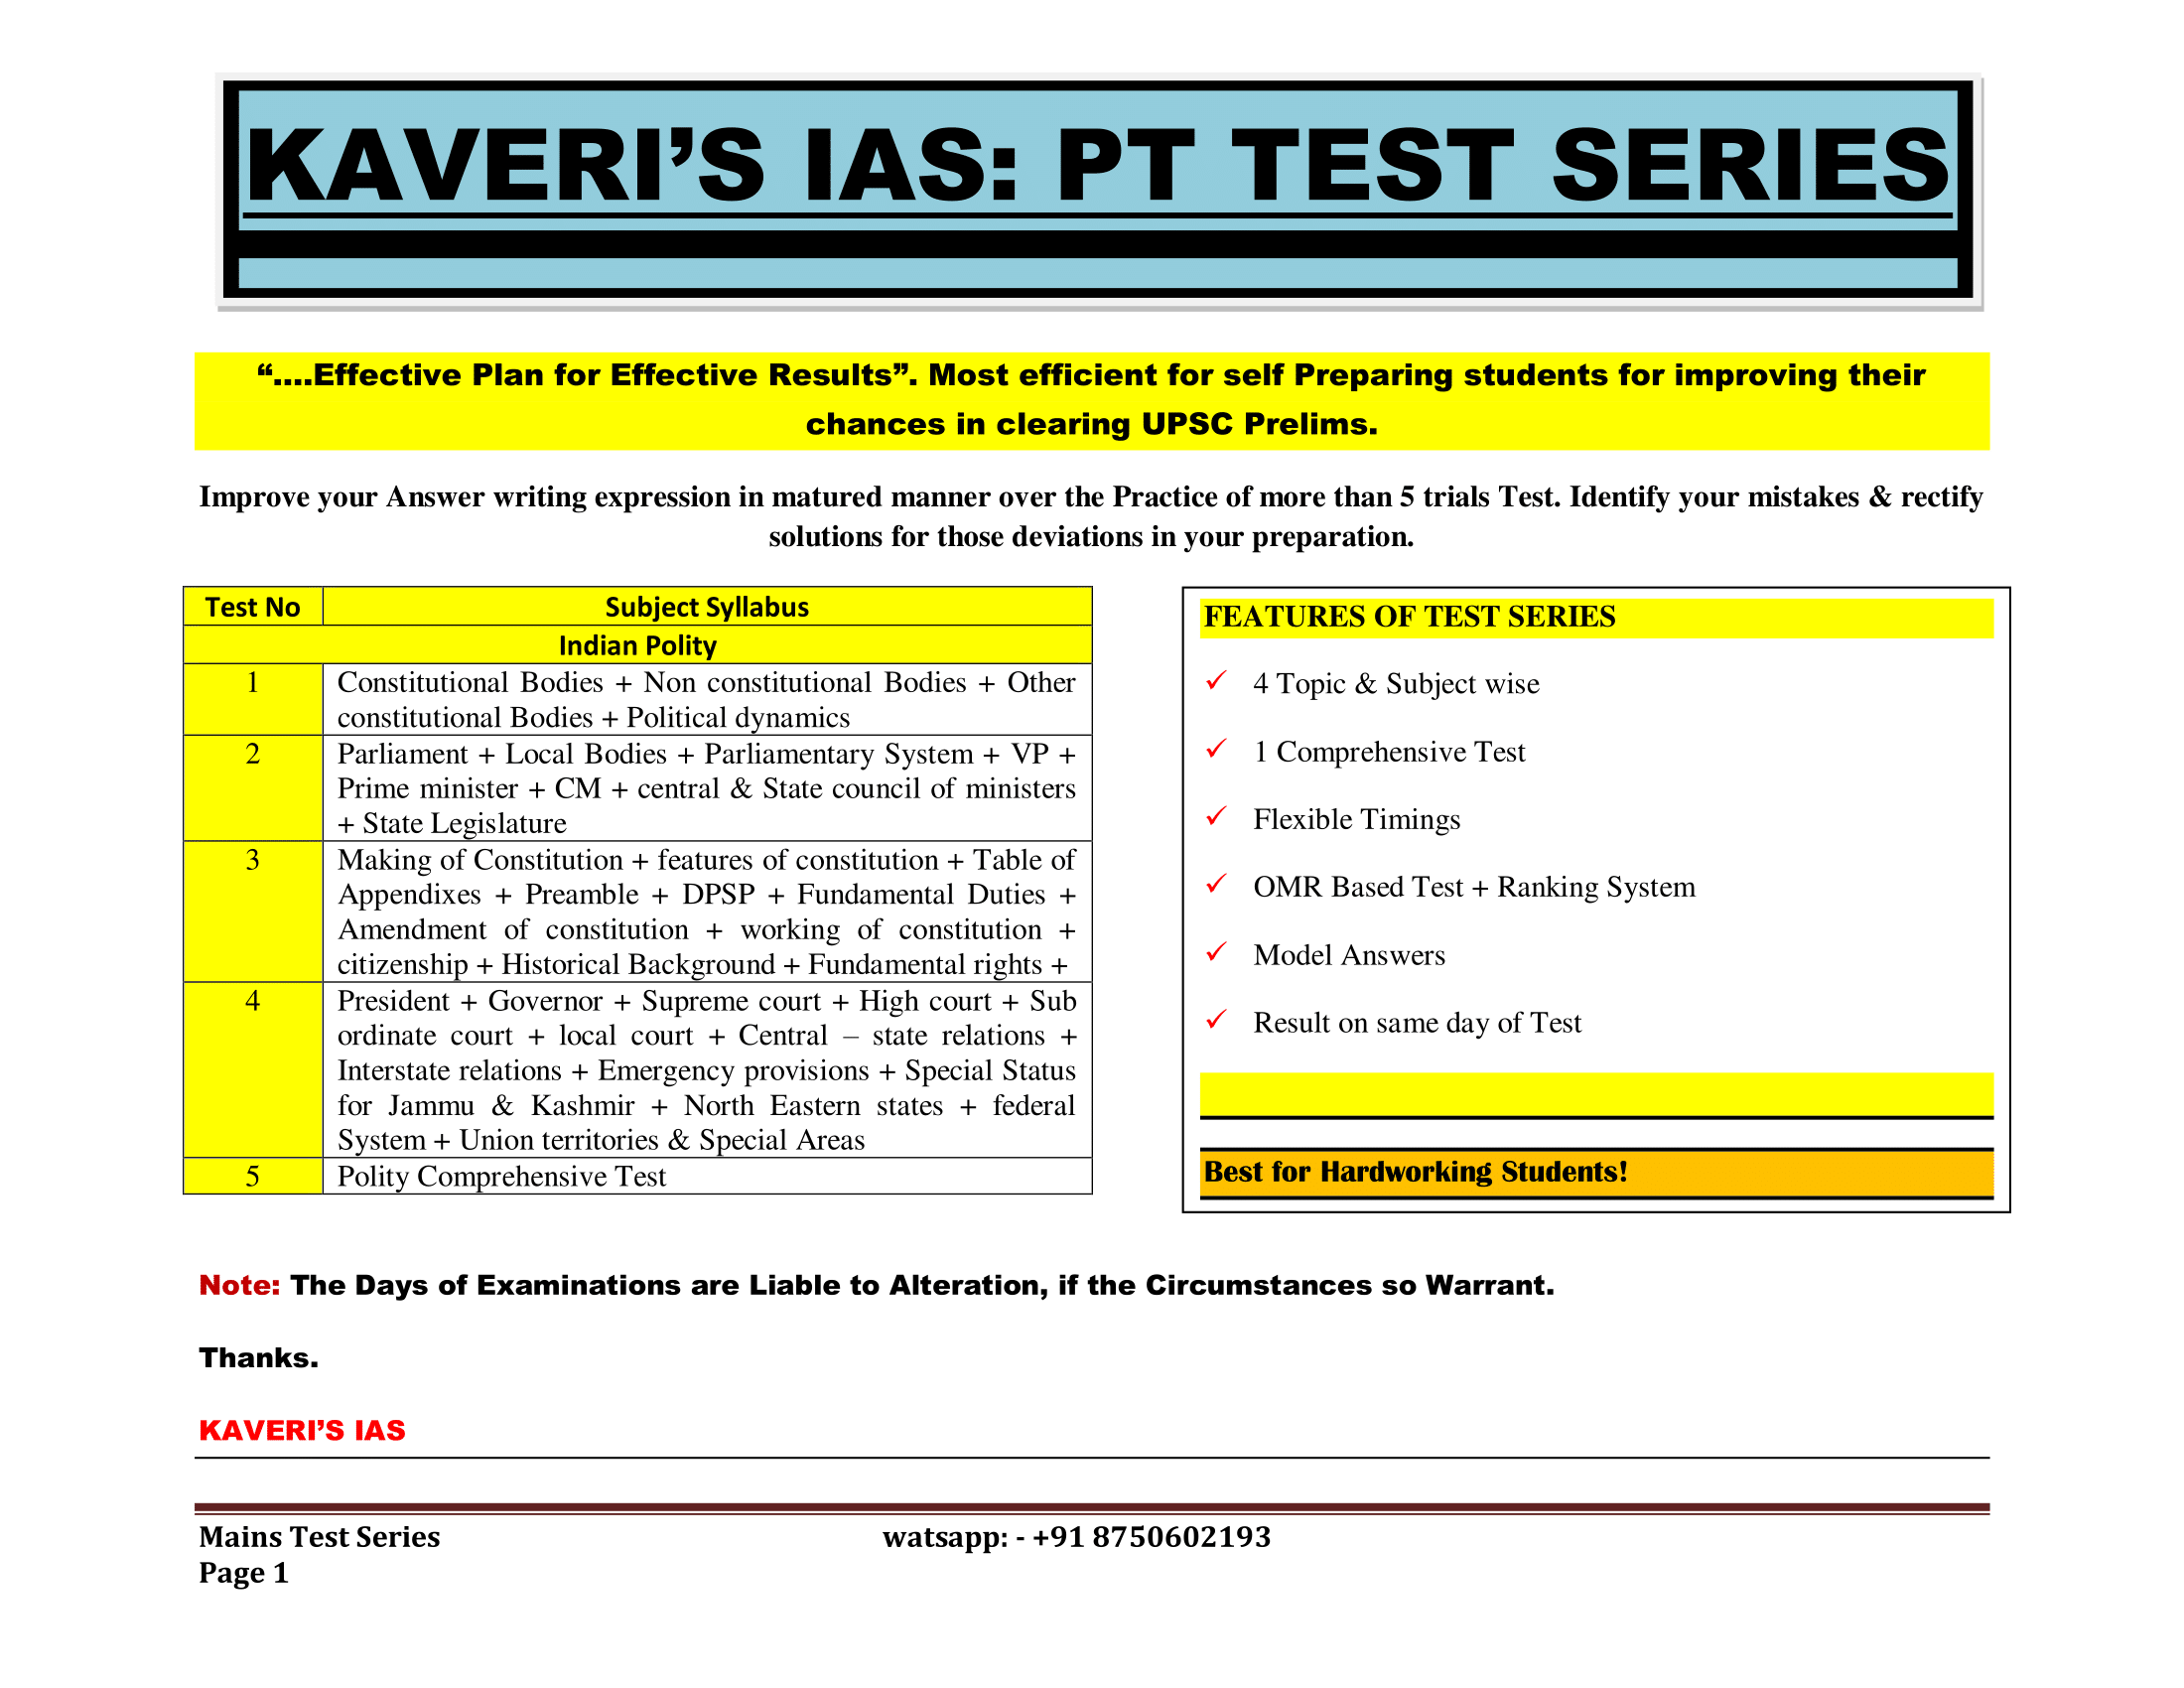 Test Series Information 2019 - KAVERI'S IAS - An Institute for Civil